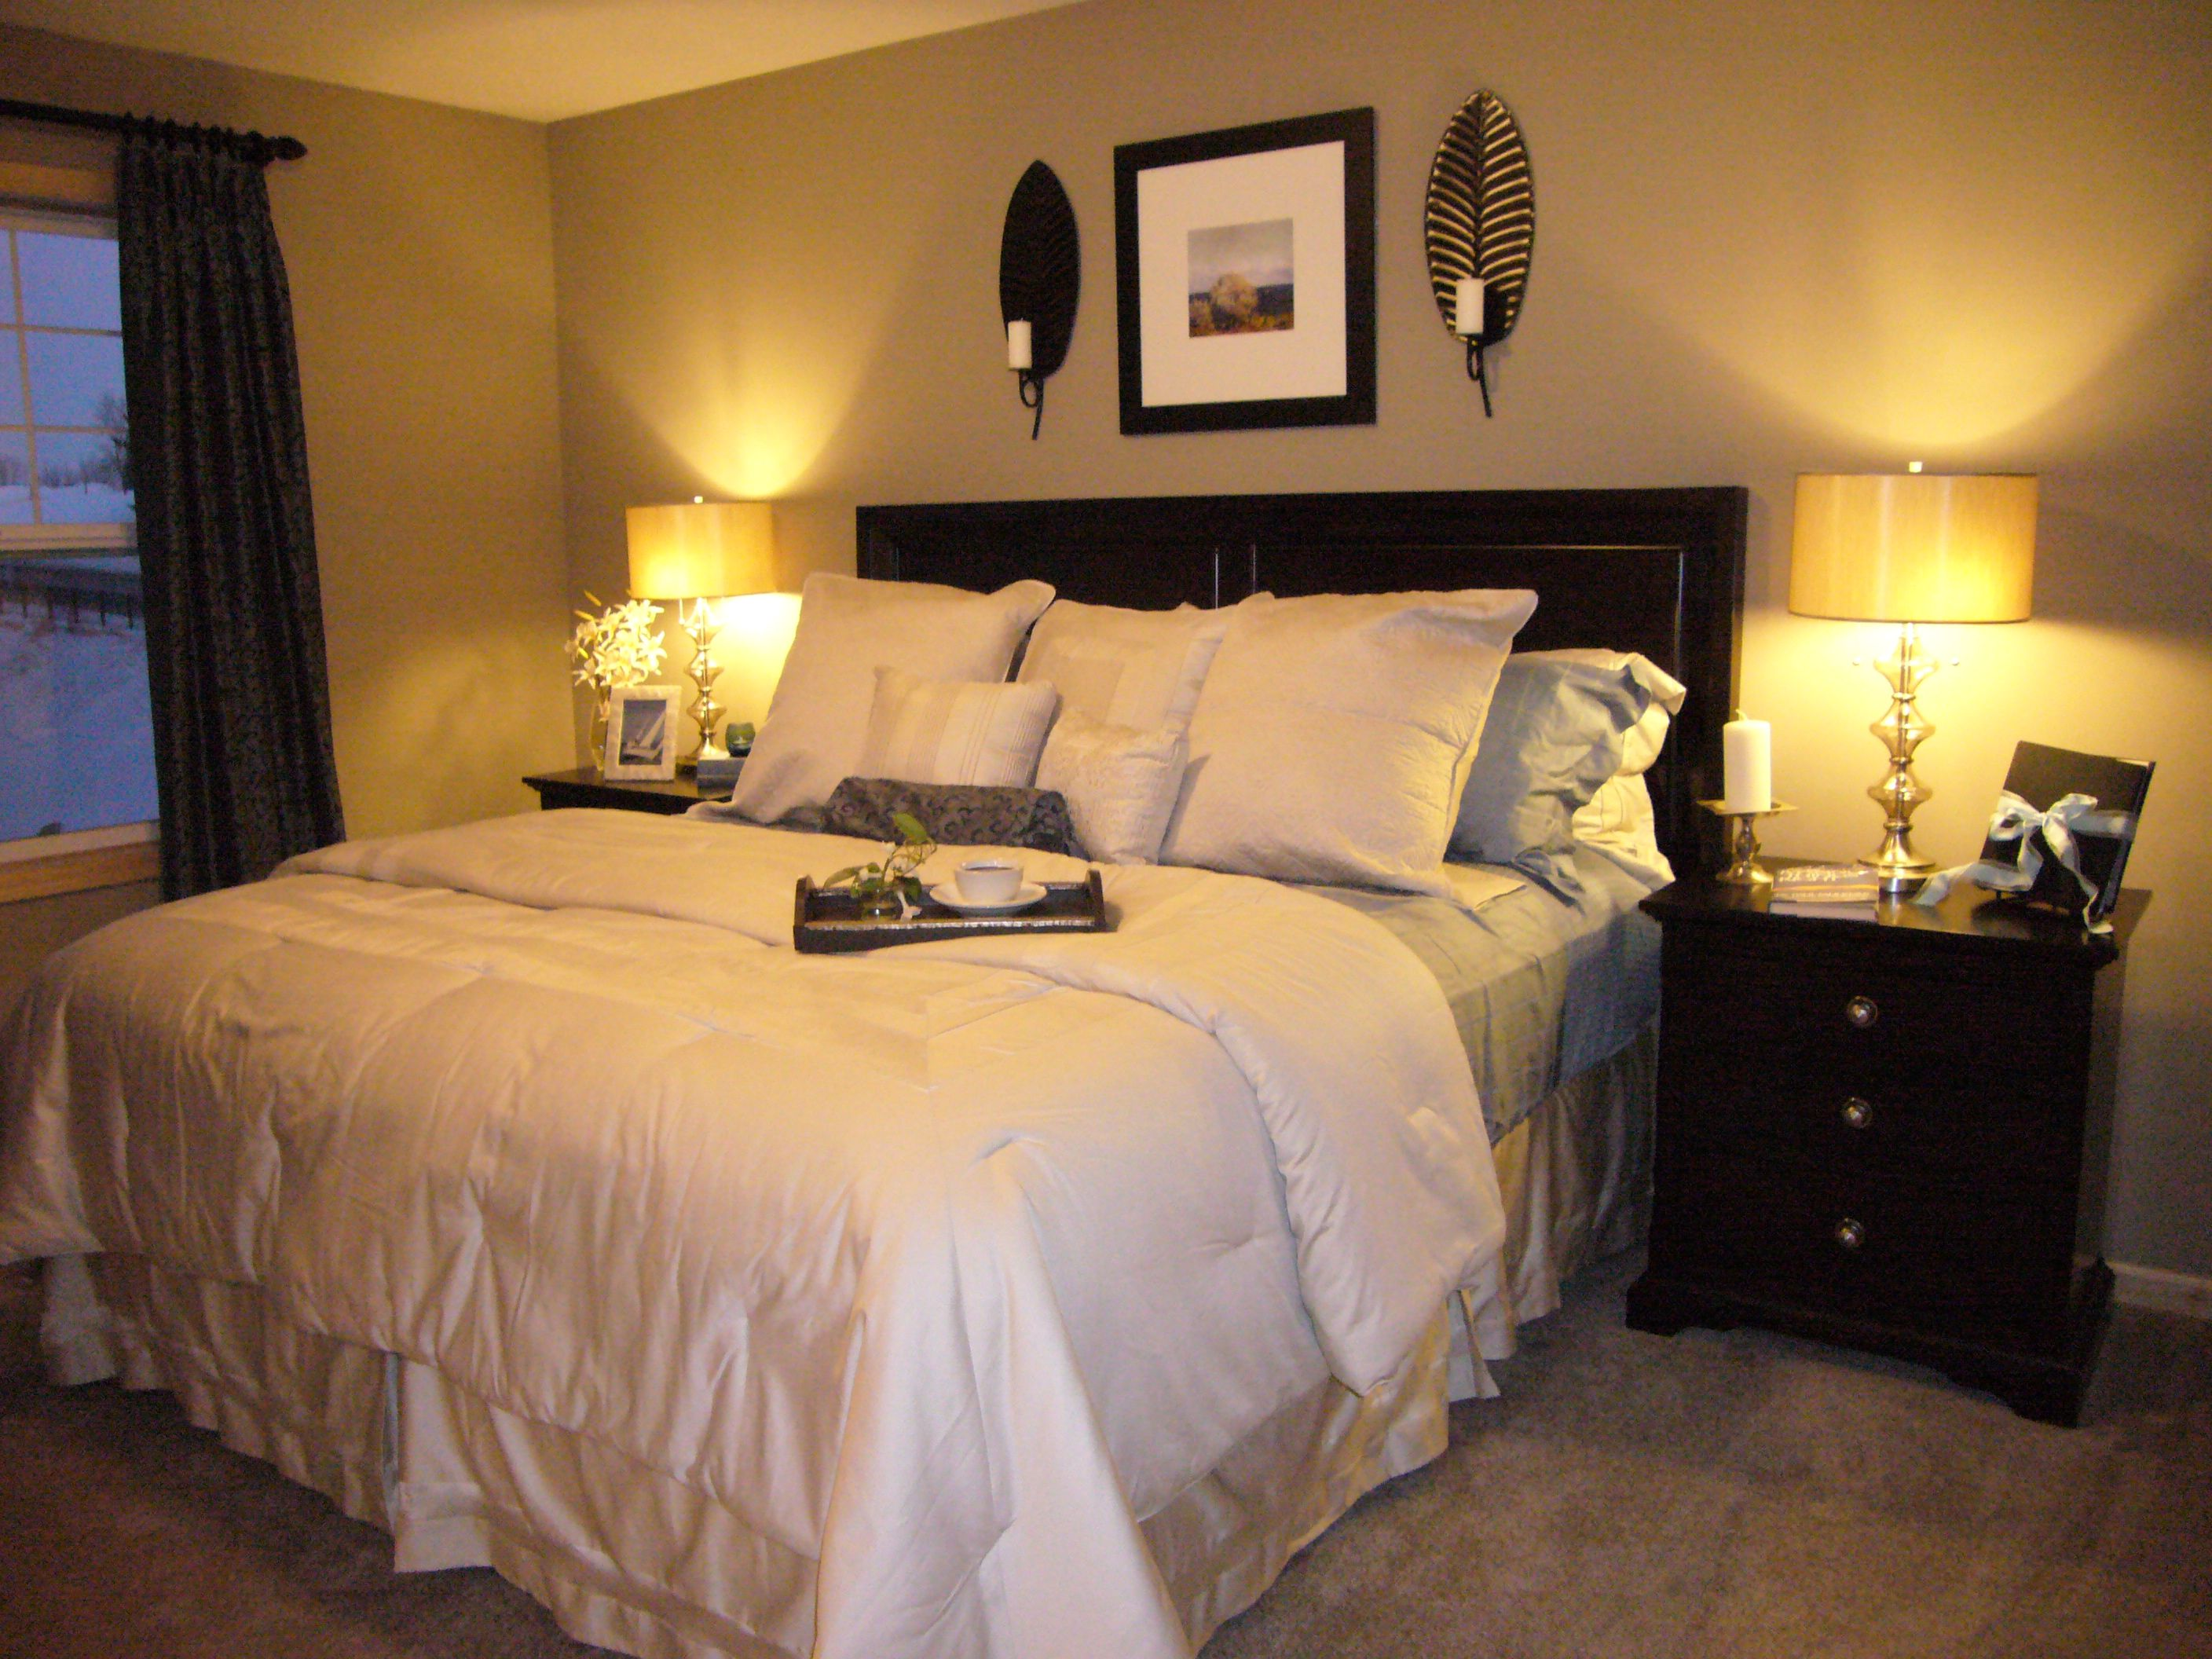 Small master bedroom ideas for decorating midcityeast Ideas to decorate master bedroom dresser